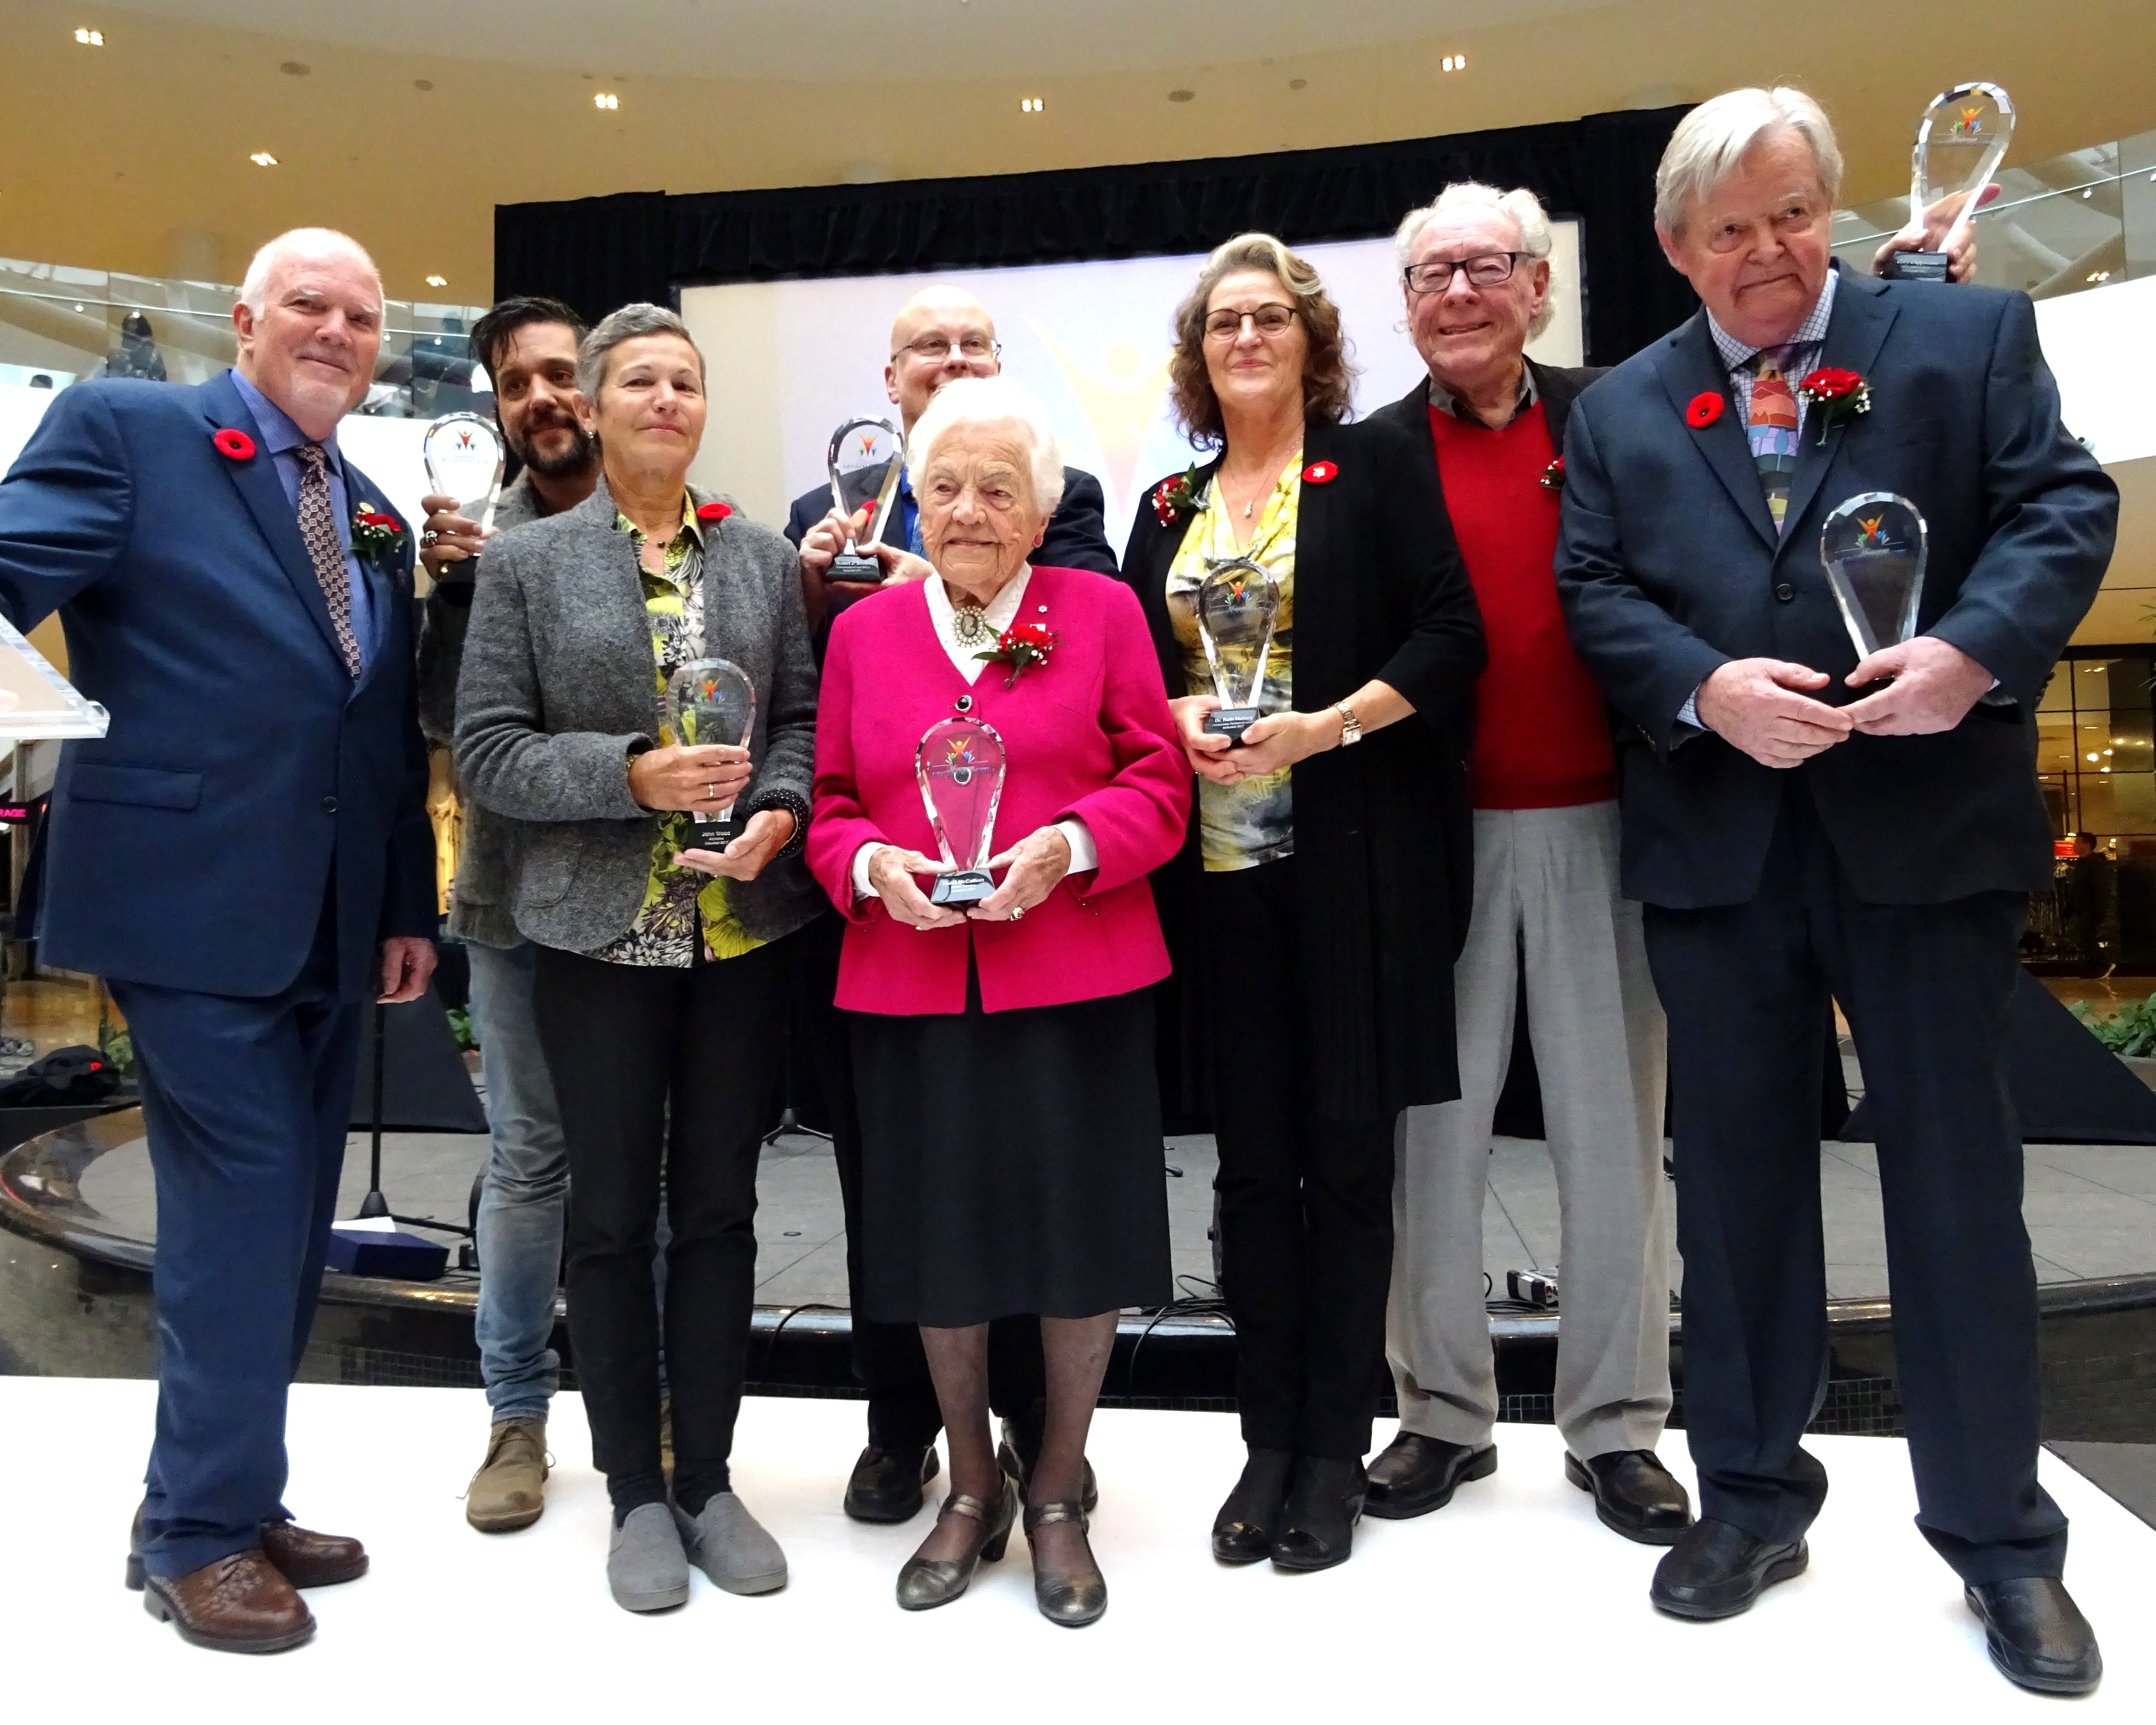 Ron Duquette with Class of 2017 Award Recipients at Legends Row: Mississauga's Walk of Fame Induction Ceremony, Erin Mills Town Centre, 4 Nov 2017